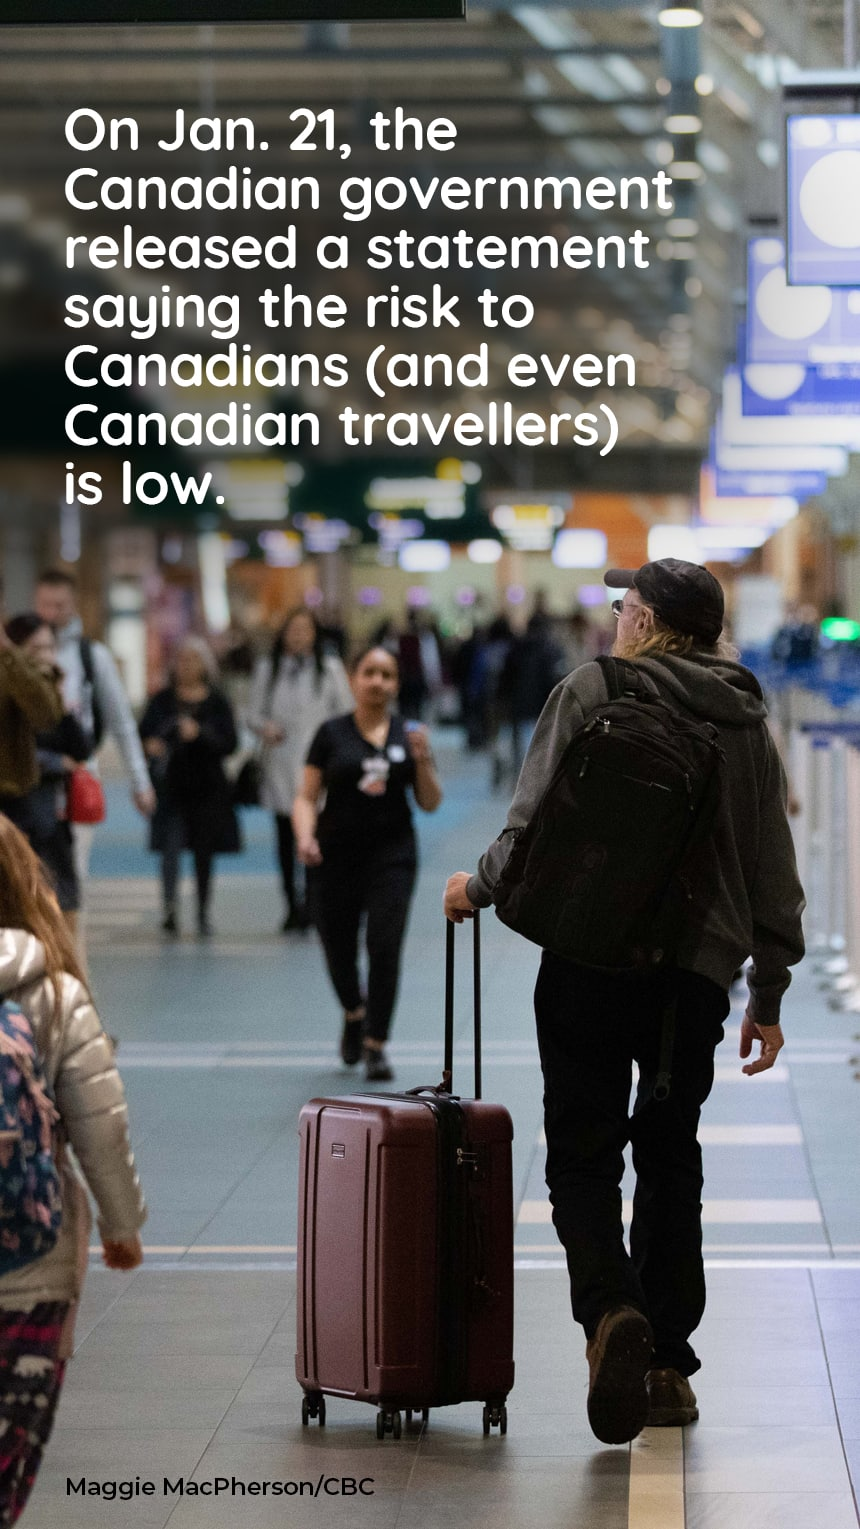 TEXT: On Jan. 21, the Canadian government released a statement saying the risk to Canadians (and even Canadian travellers) is low. IMAGE: People walking through airport. CREDIT: Maggie MacPherson/CBC